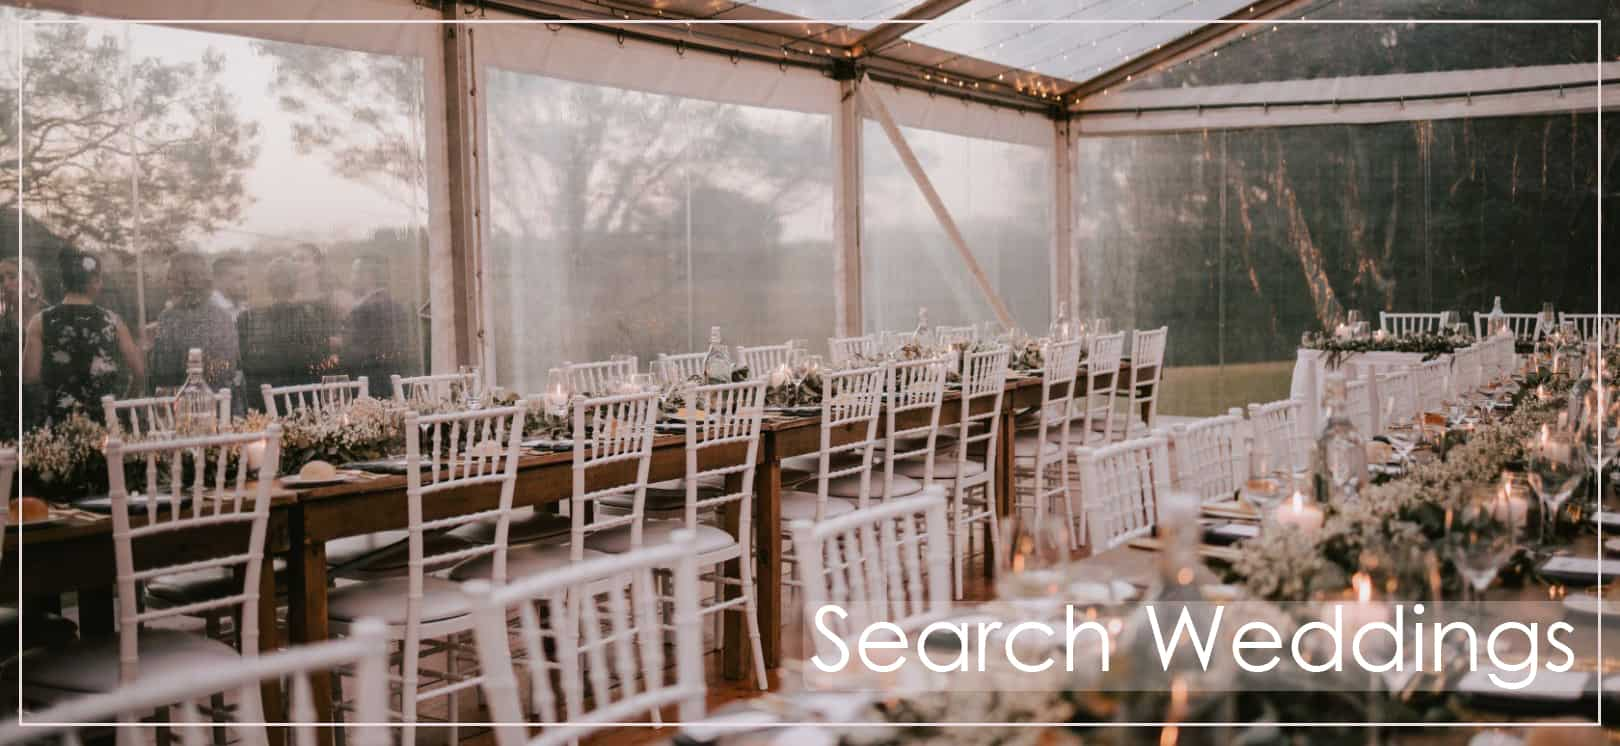 Hanging Garden - Search Weddings